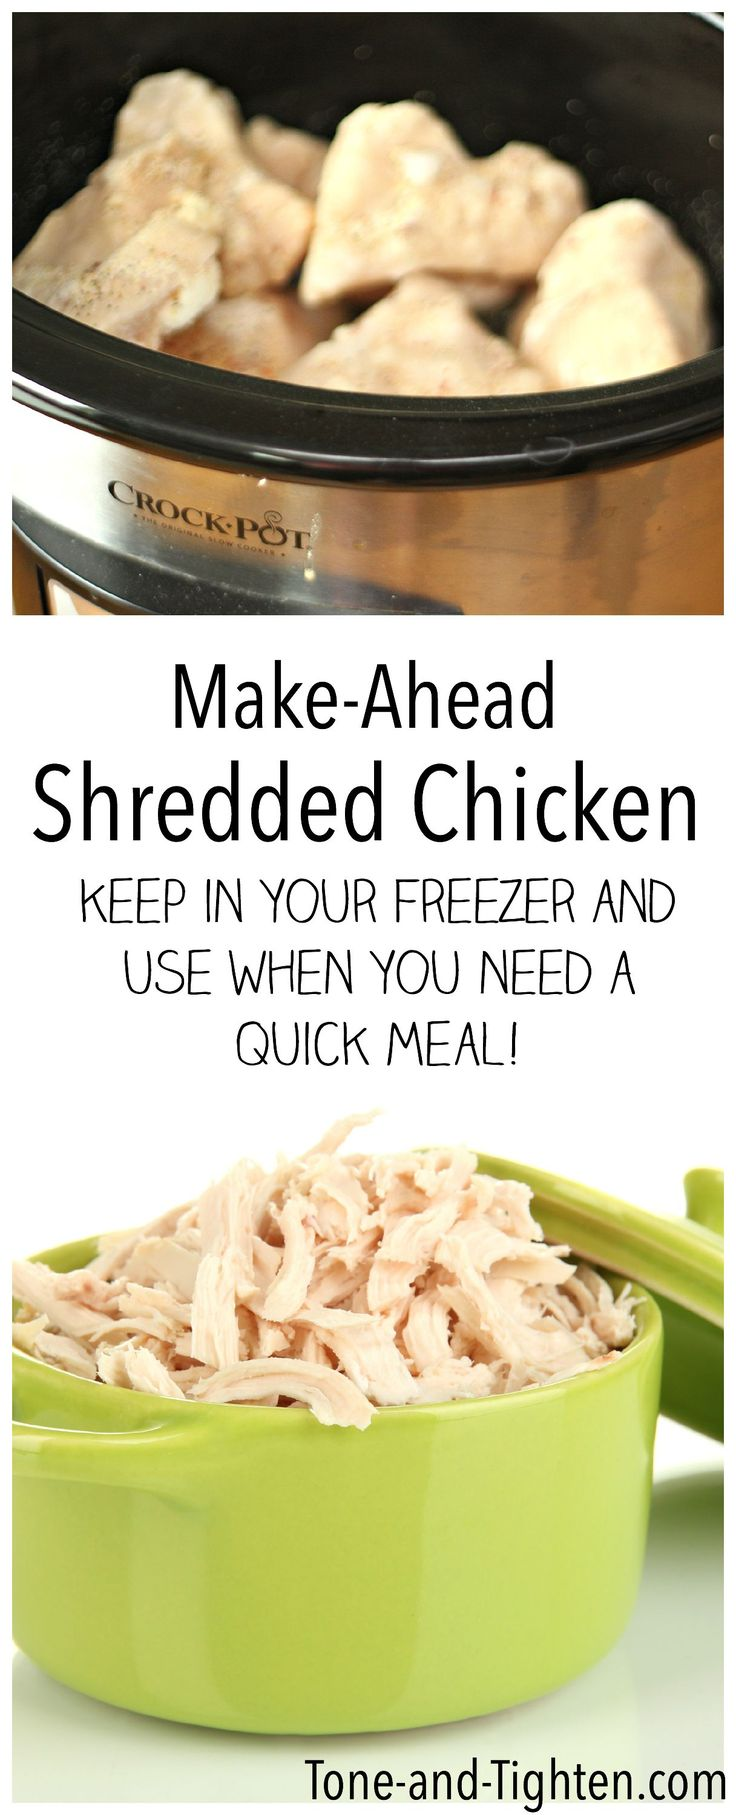 479 best freezer cooking images on pinterest freezer meals make ahead slow cooker shredded chicken freezer meal keep on hand for healthy dinner recipes forumfinder Gallery